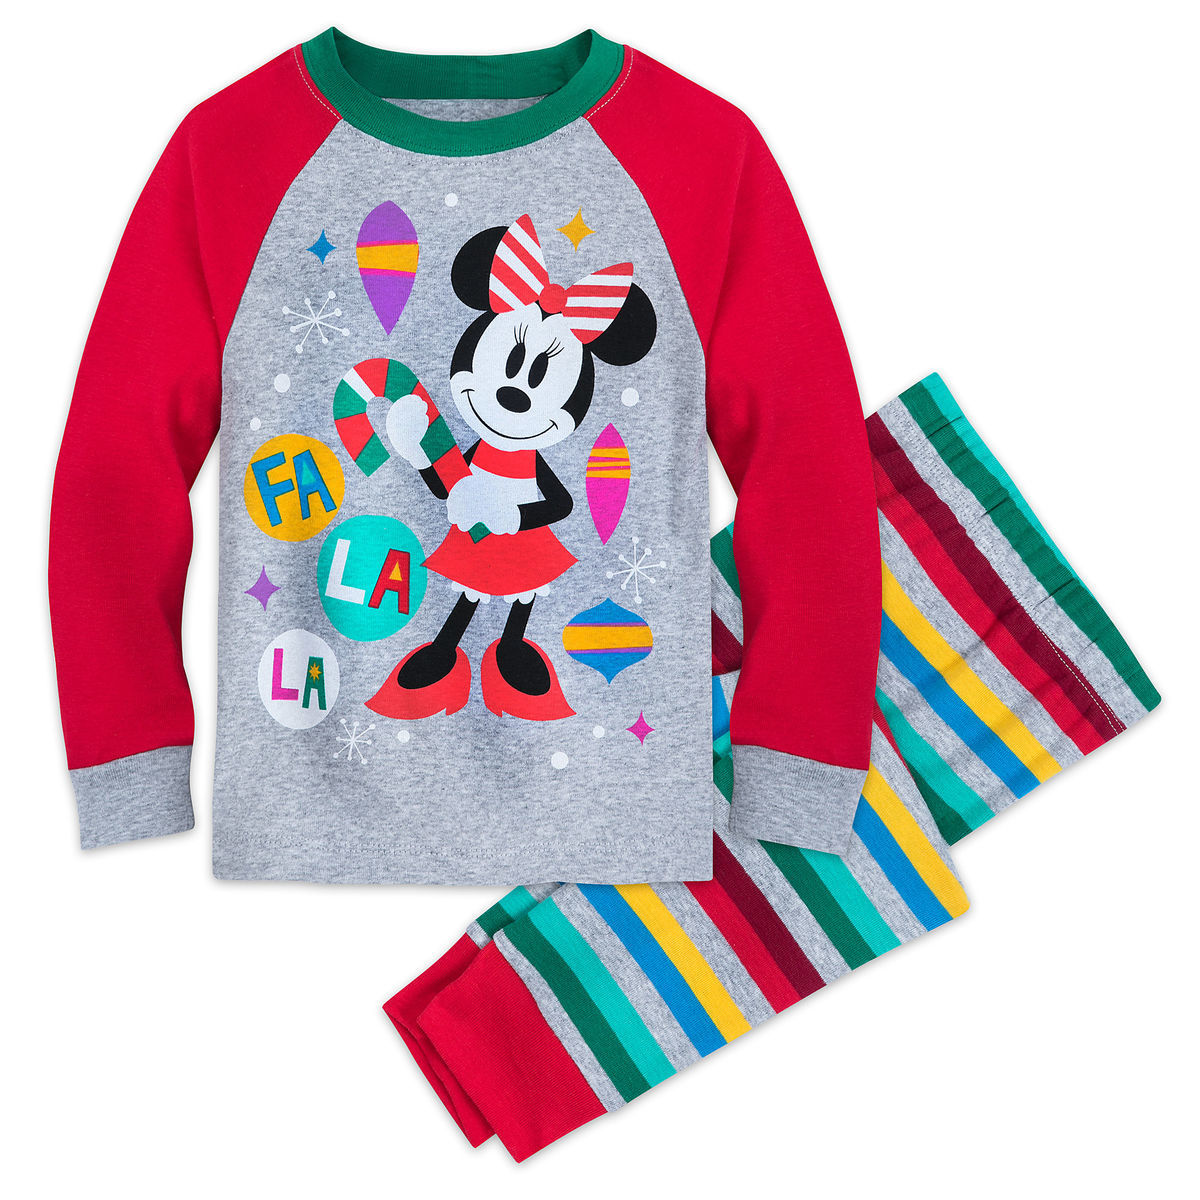 ed3ffd9a53 Product Image of Minnie Mouse Holiday PJ Set for Girls   1